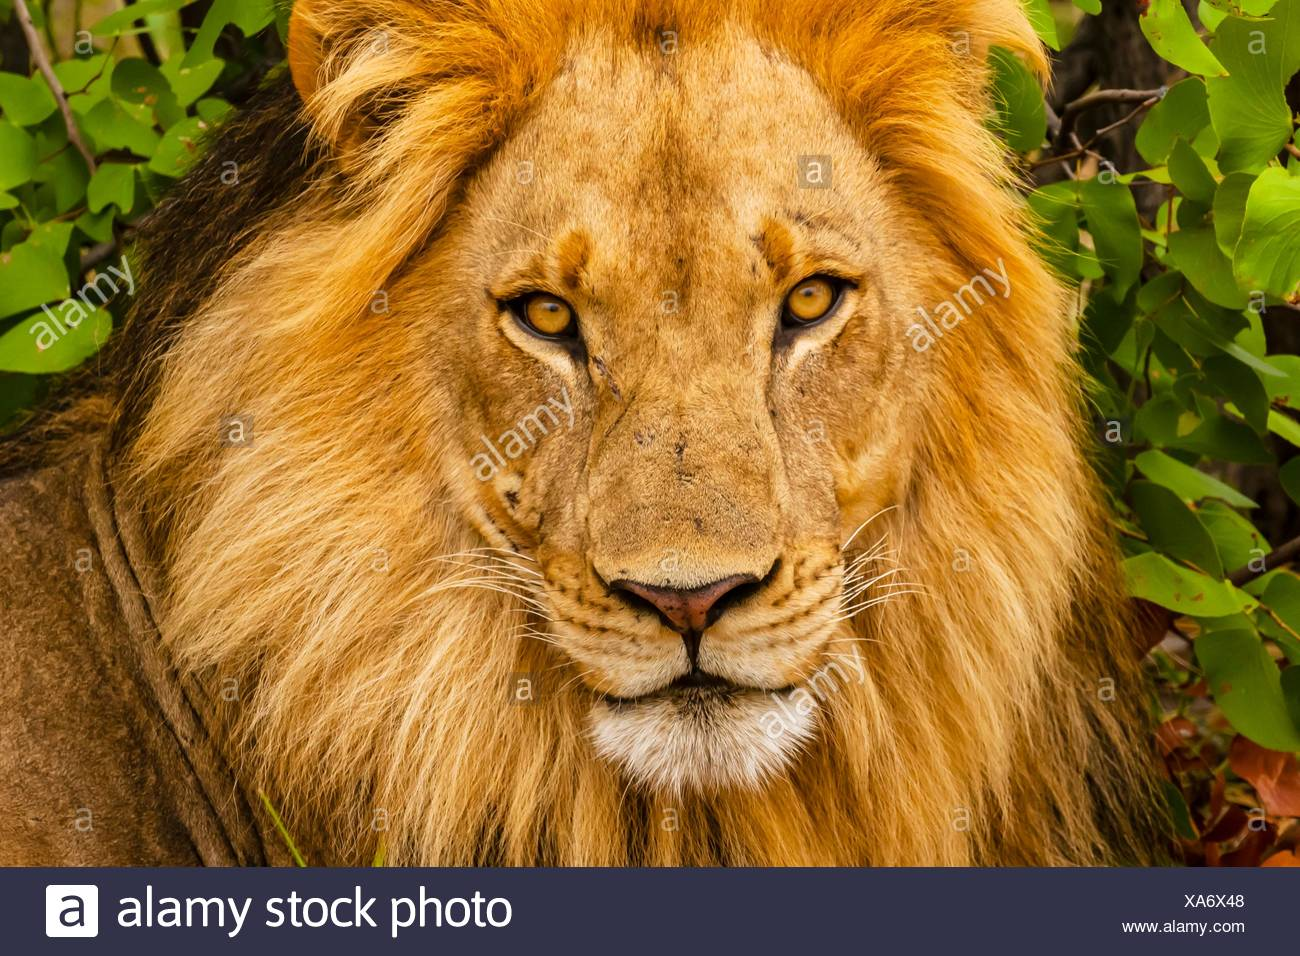 A male lion in the Linyanti Marshes, Botswana. Stock Photo